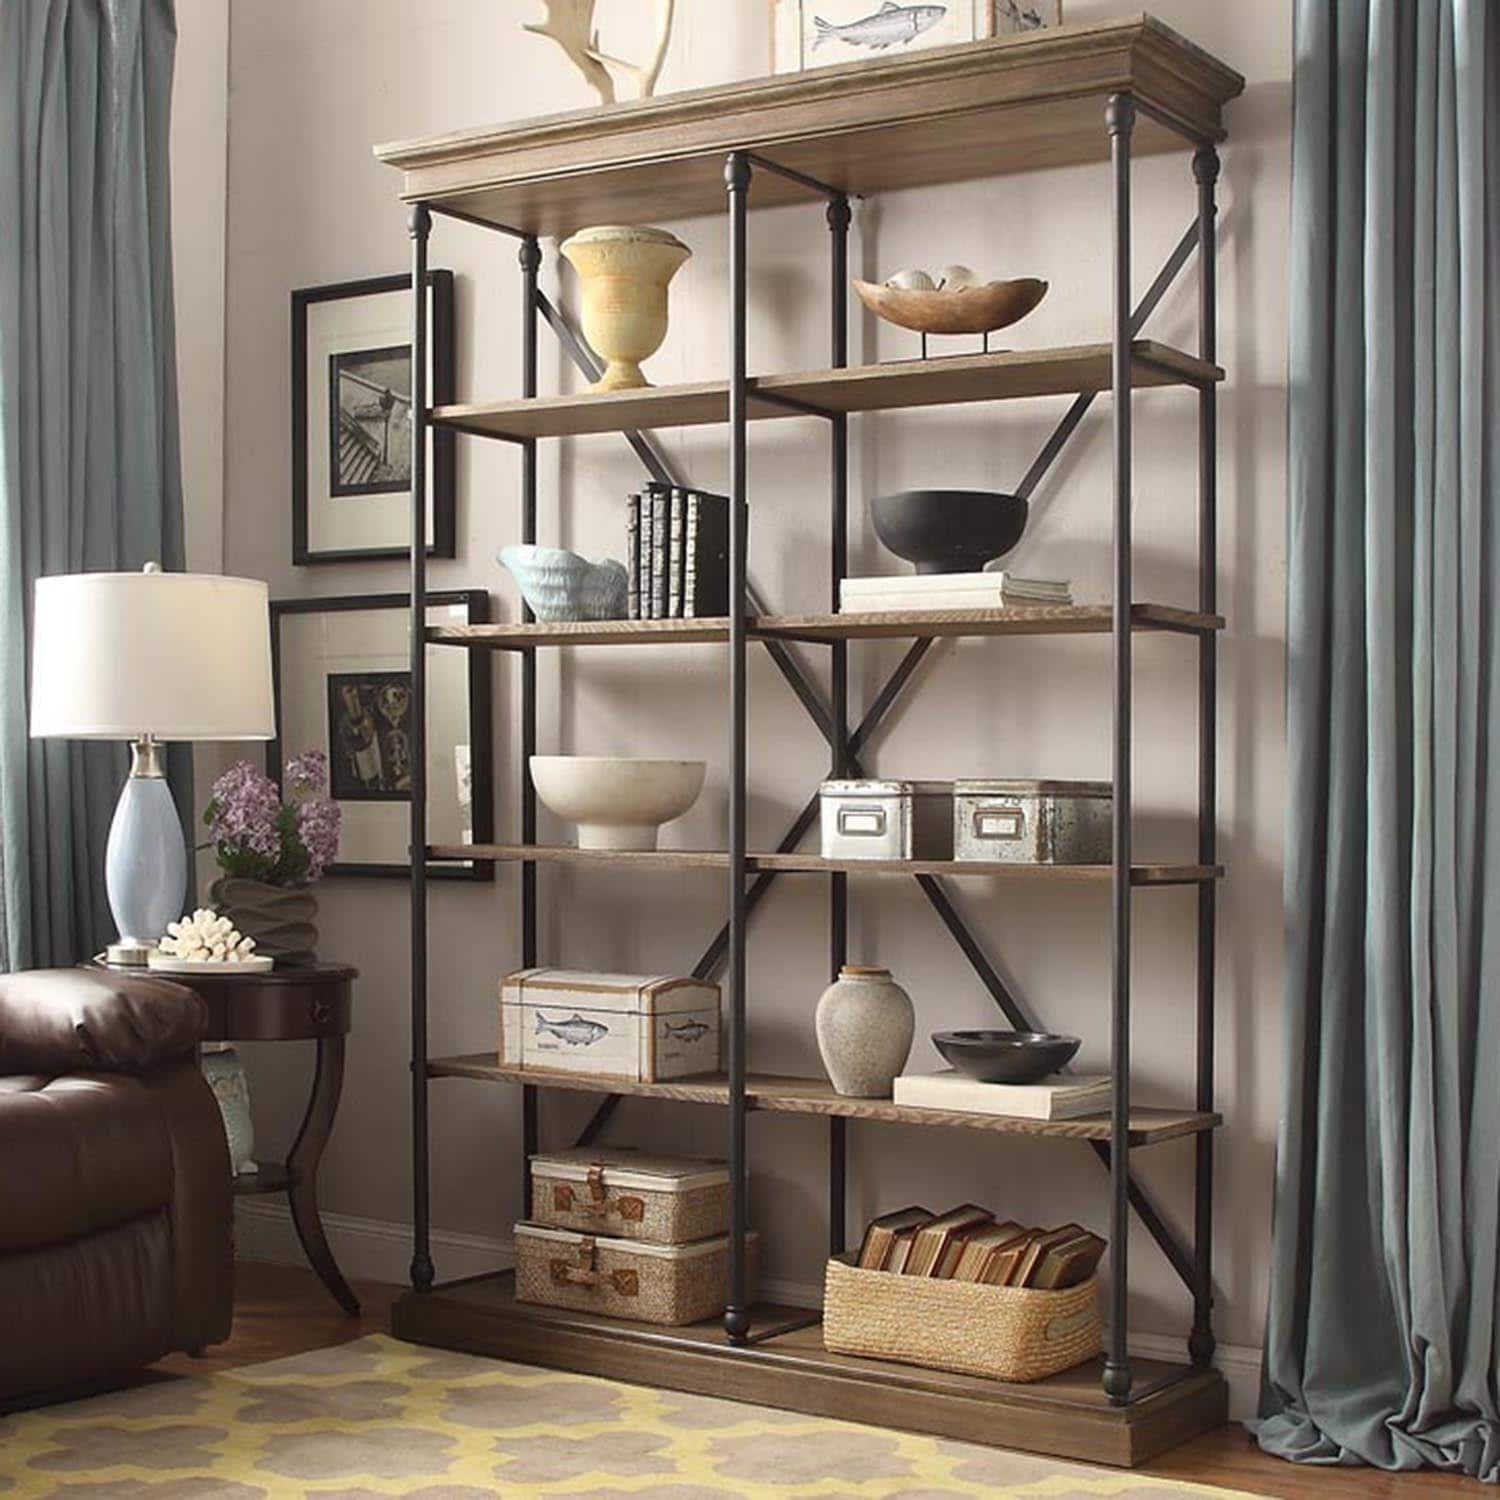 unit favorite view upcycled metal wide size of inch b bookcase beloved bookshelf uncategorized bookcases narrow shelf bewi glass shelving float stunning magnificent brushed unforeseen gripping deep pleasing favored noticeable full corner nickel amish larger terrifying